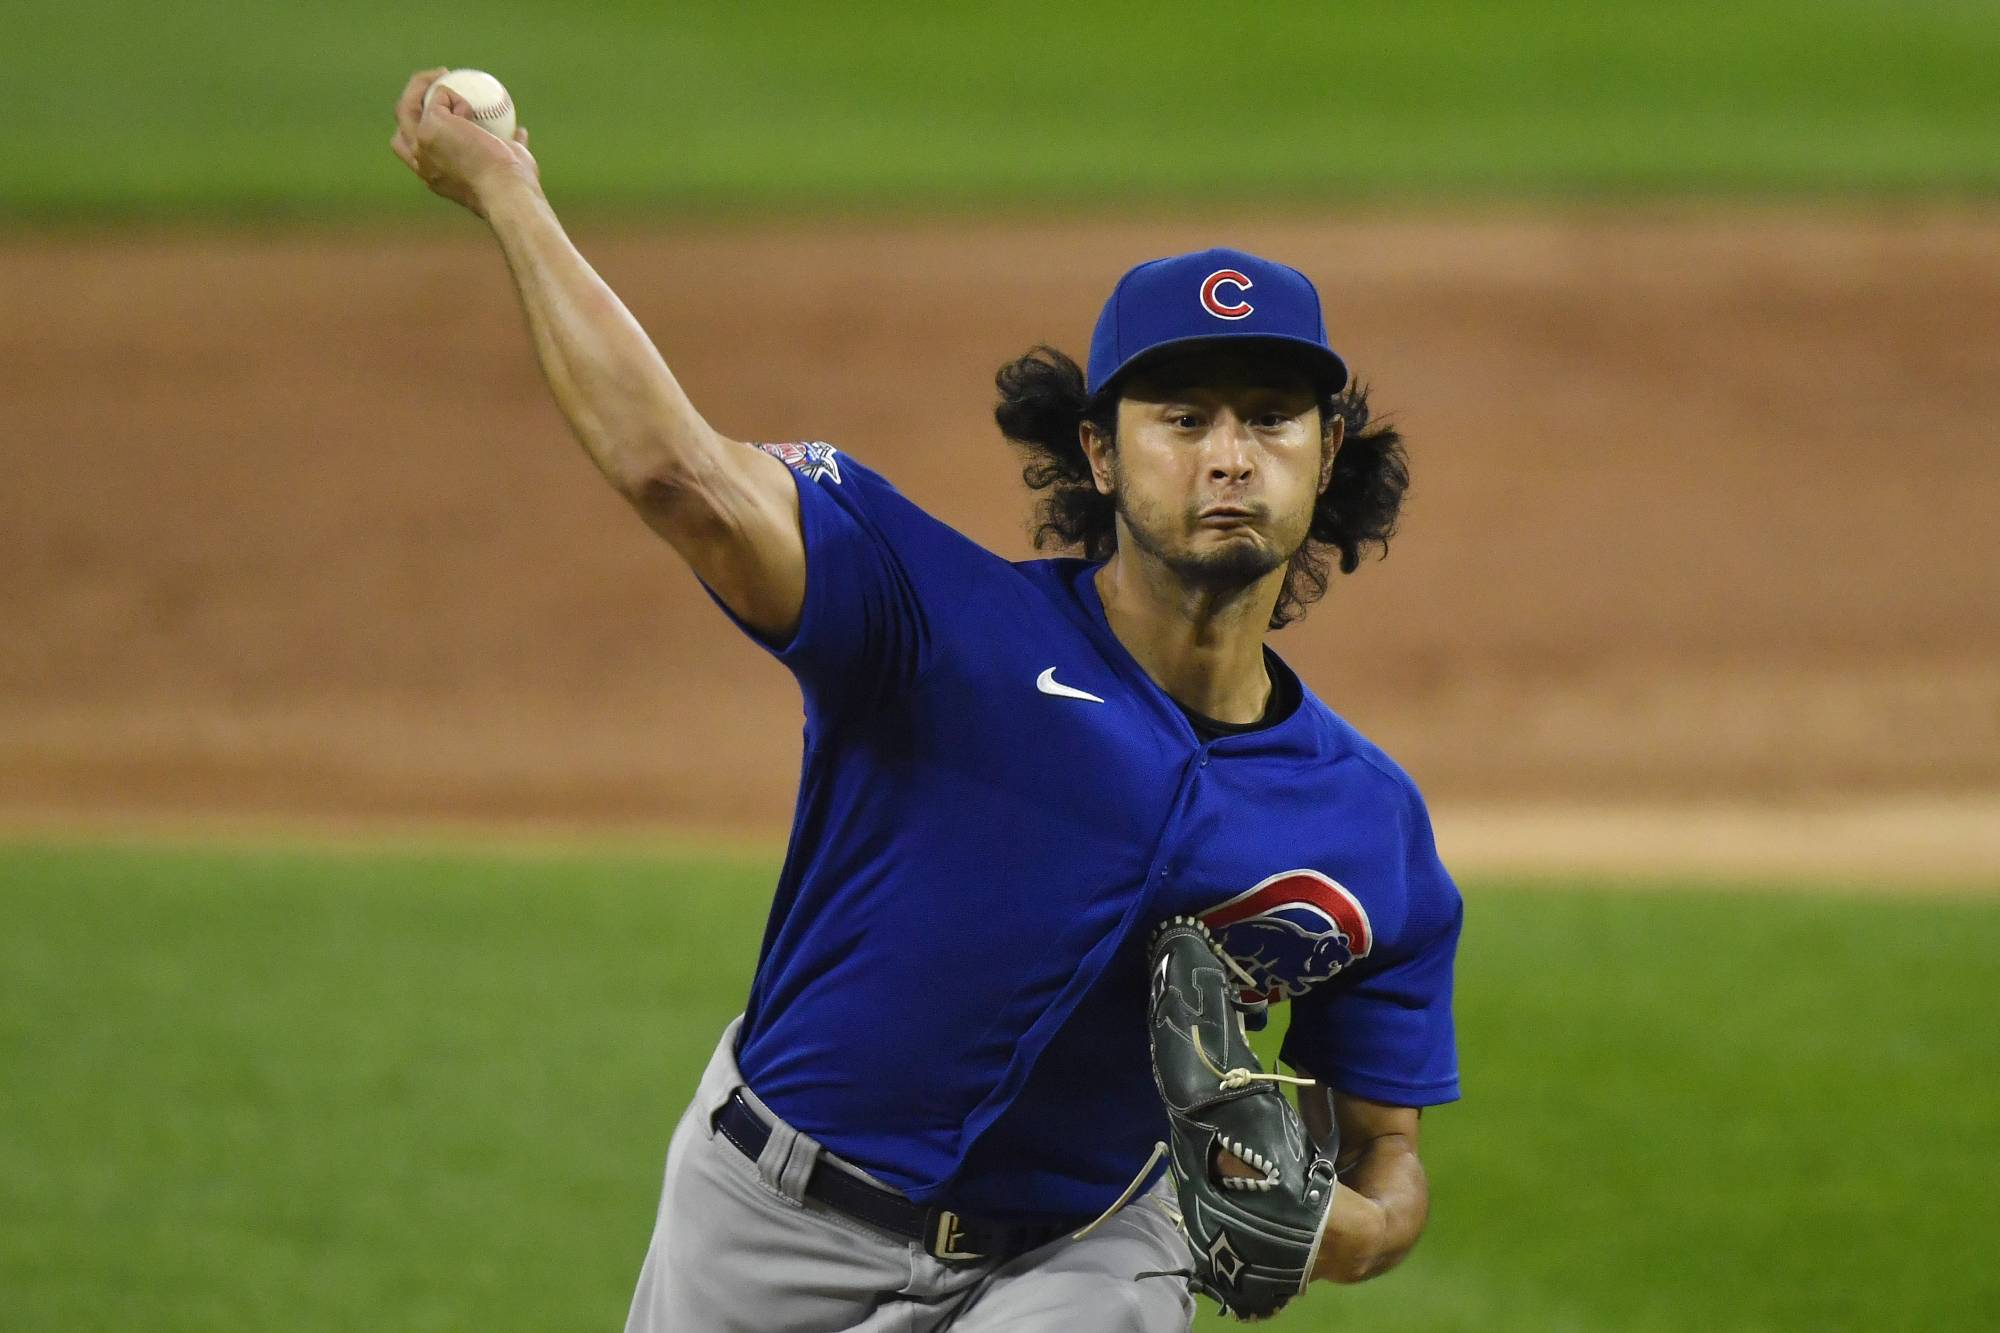 The Cubs' Yu Darvish pitches against the White Sox in Chicago on Sept. 25. | USA TODAY / VIA REUTERS